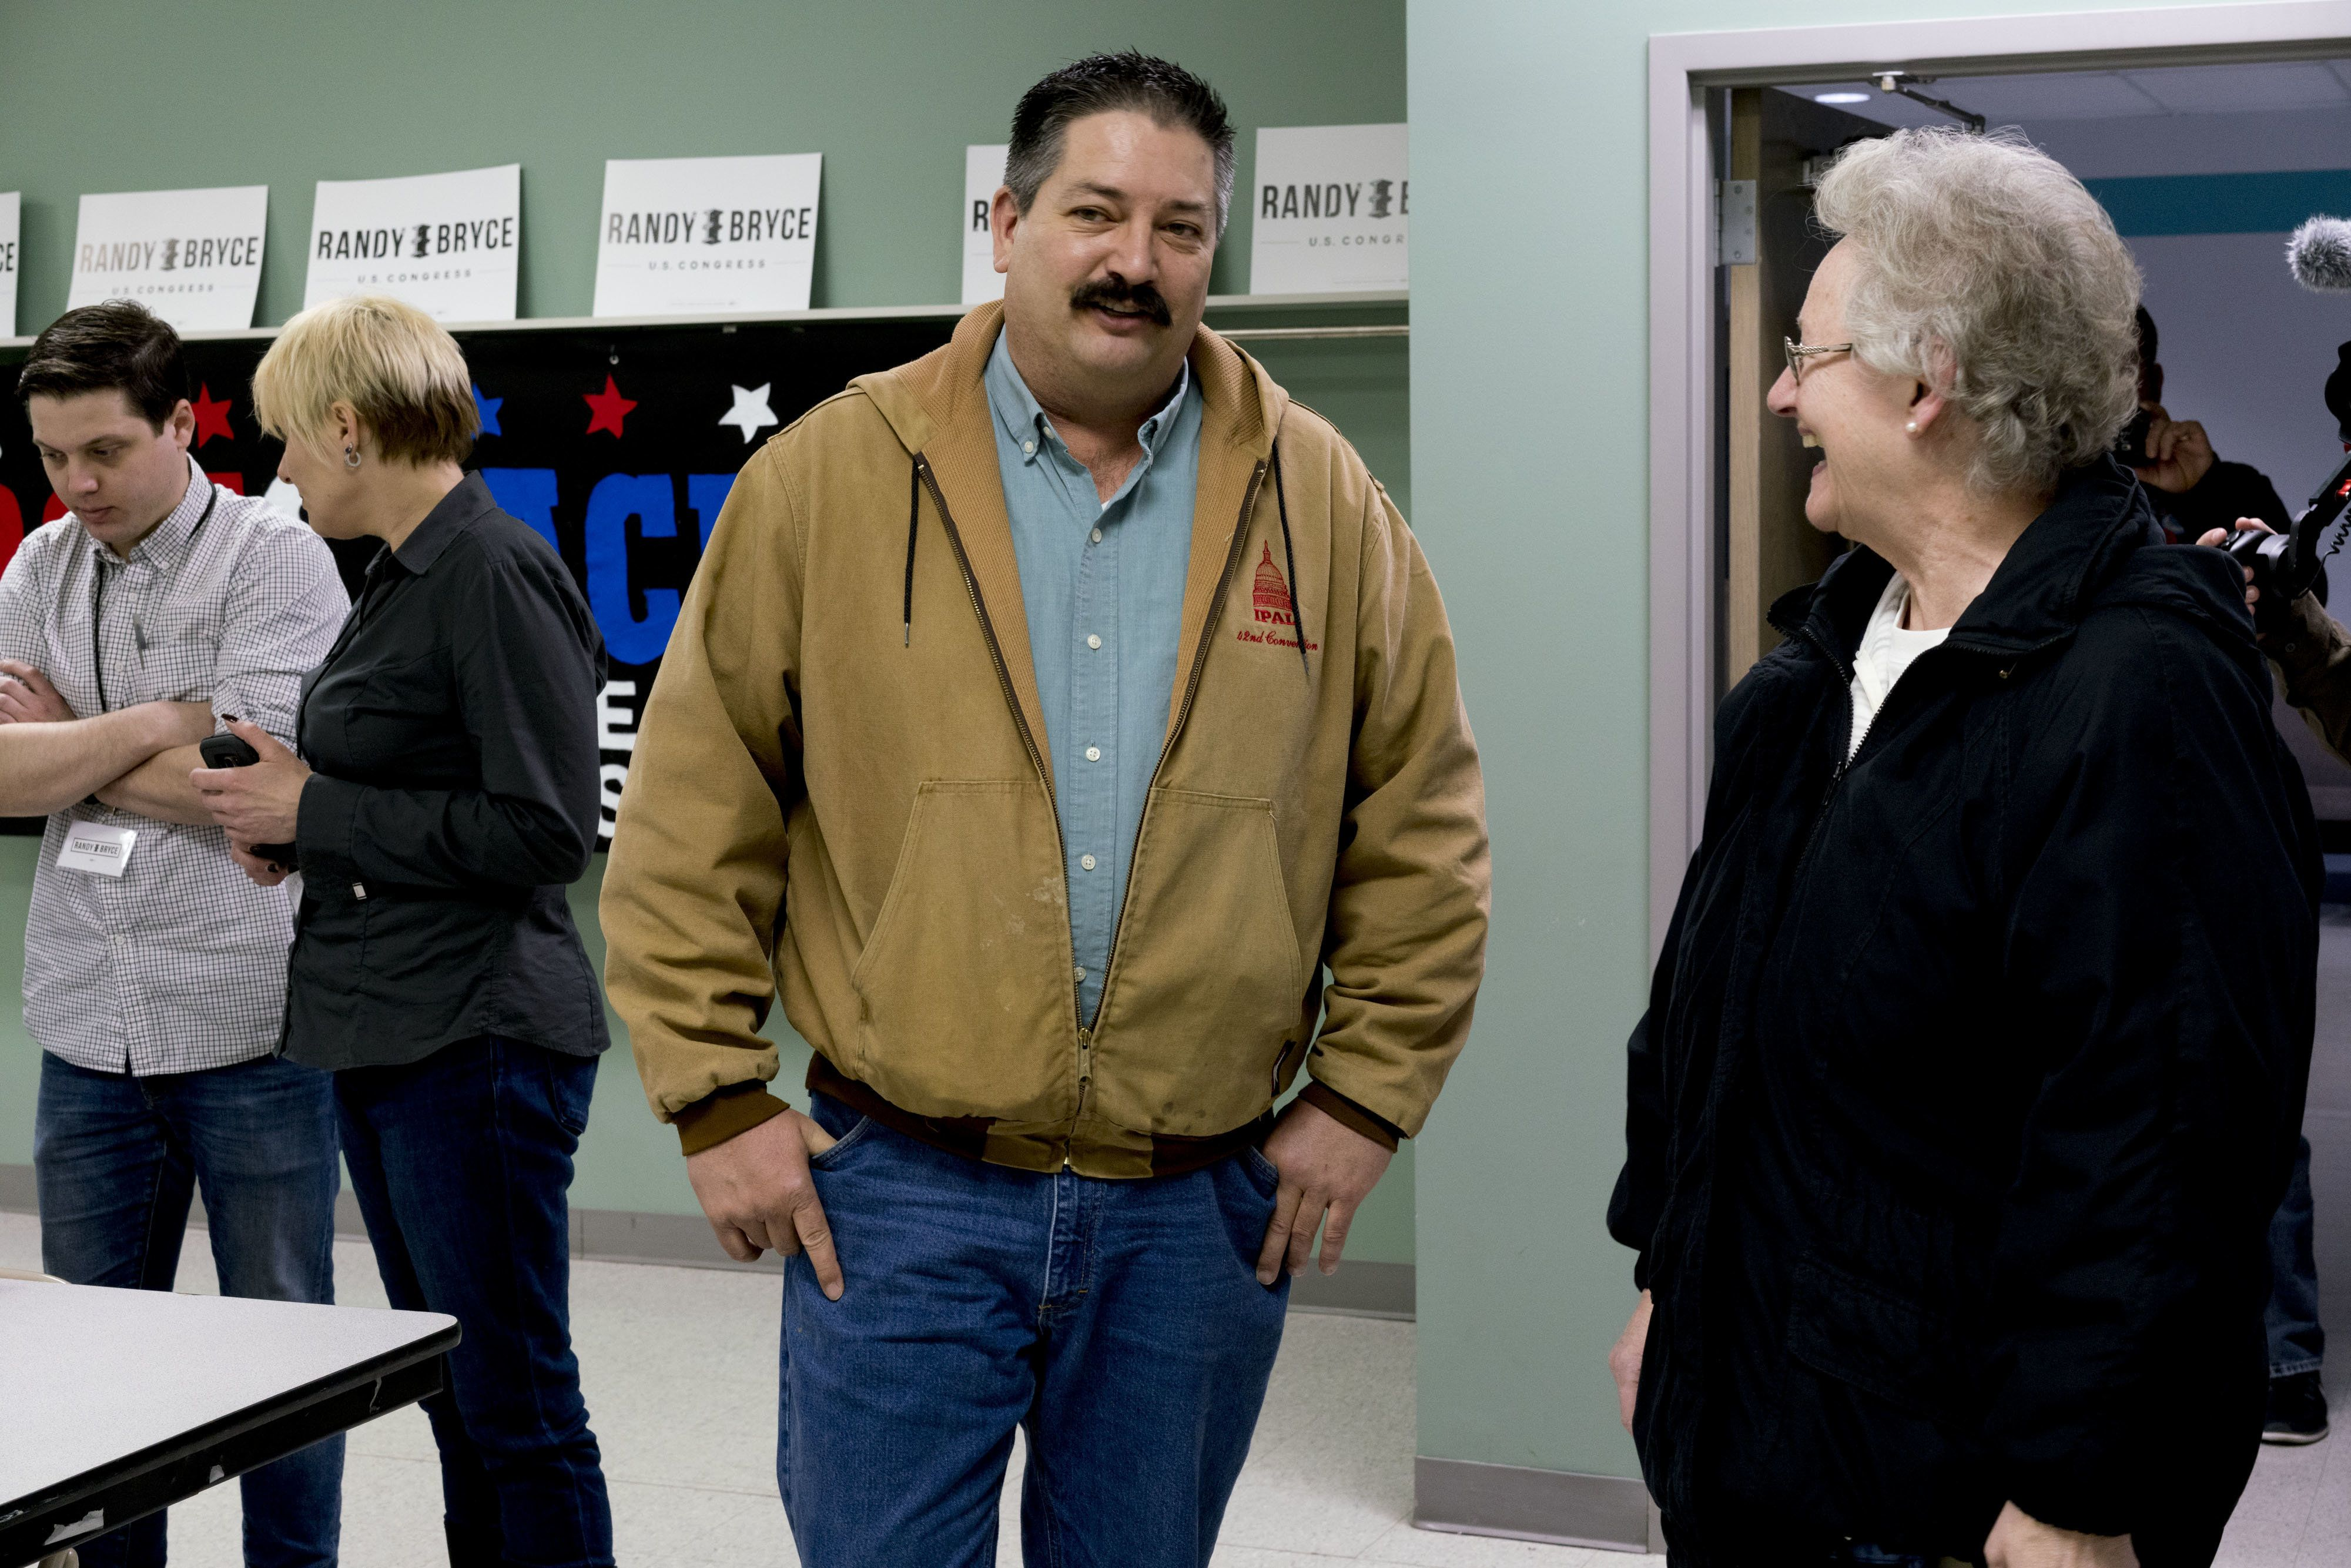 Randy Bryce, Democratic U.S. Representative candidate from Wisconsin, speaks with a volunteer during a petition-gathering launch event in Kenosha, Wisconsin, U.S., on Sunday, April 22, 2018. Bryce, an Army veteran and ironworker, is gathering signatures to get on the November ballot for the race to fillHouse SpeakerPaul Ryan's Wisconsin first congressional district seat, this after Ryan announced he won't be seeking re-election. Photographer: Daniel Acker/Bloomberg via Getty Images